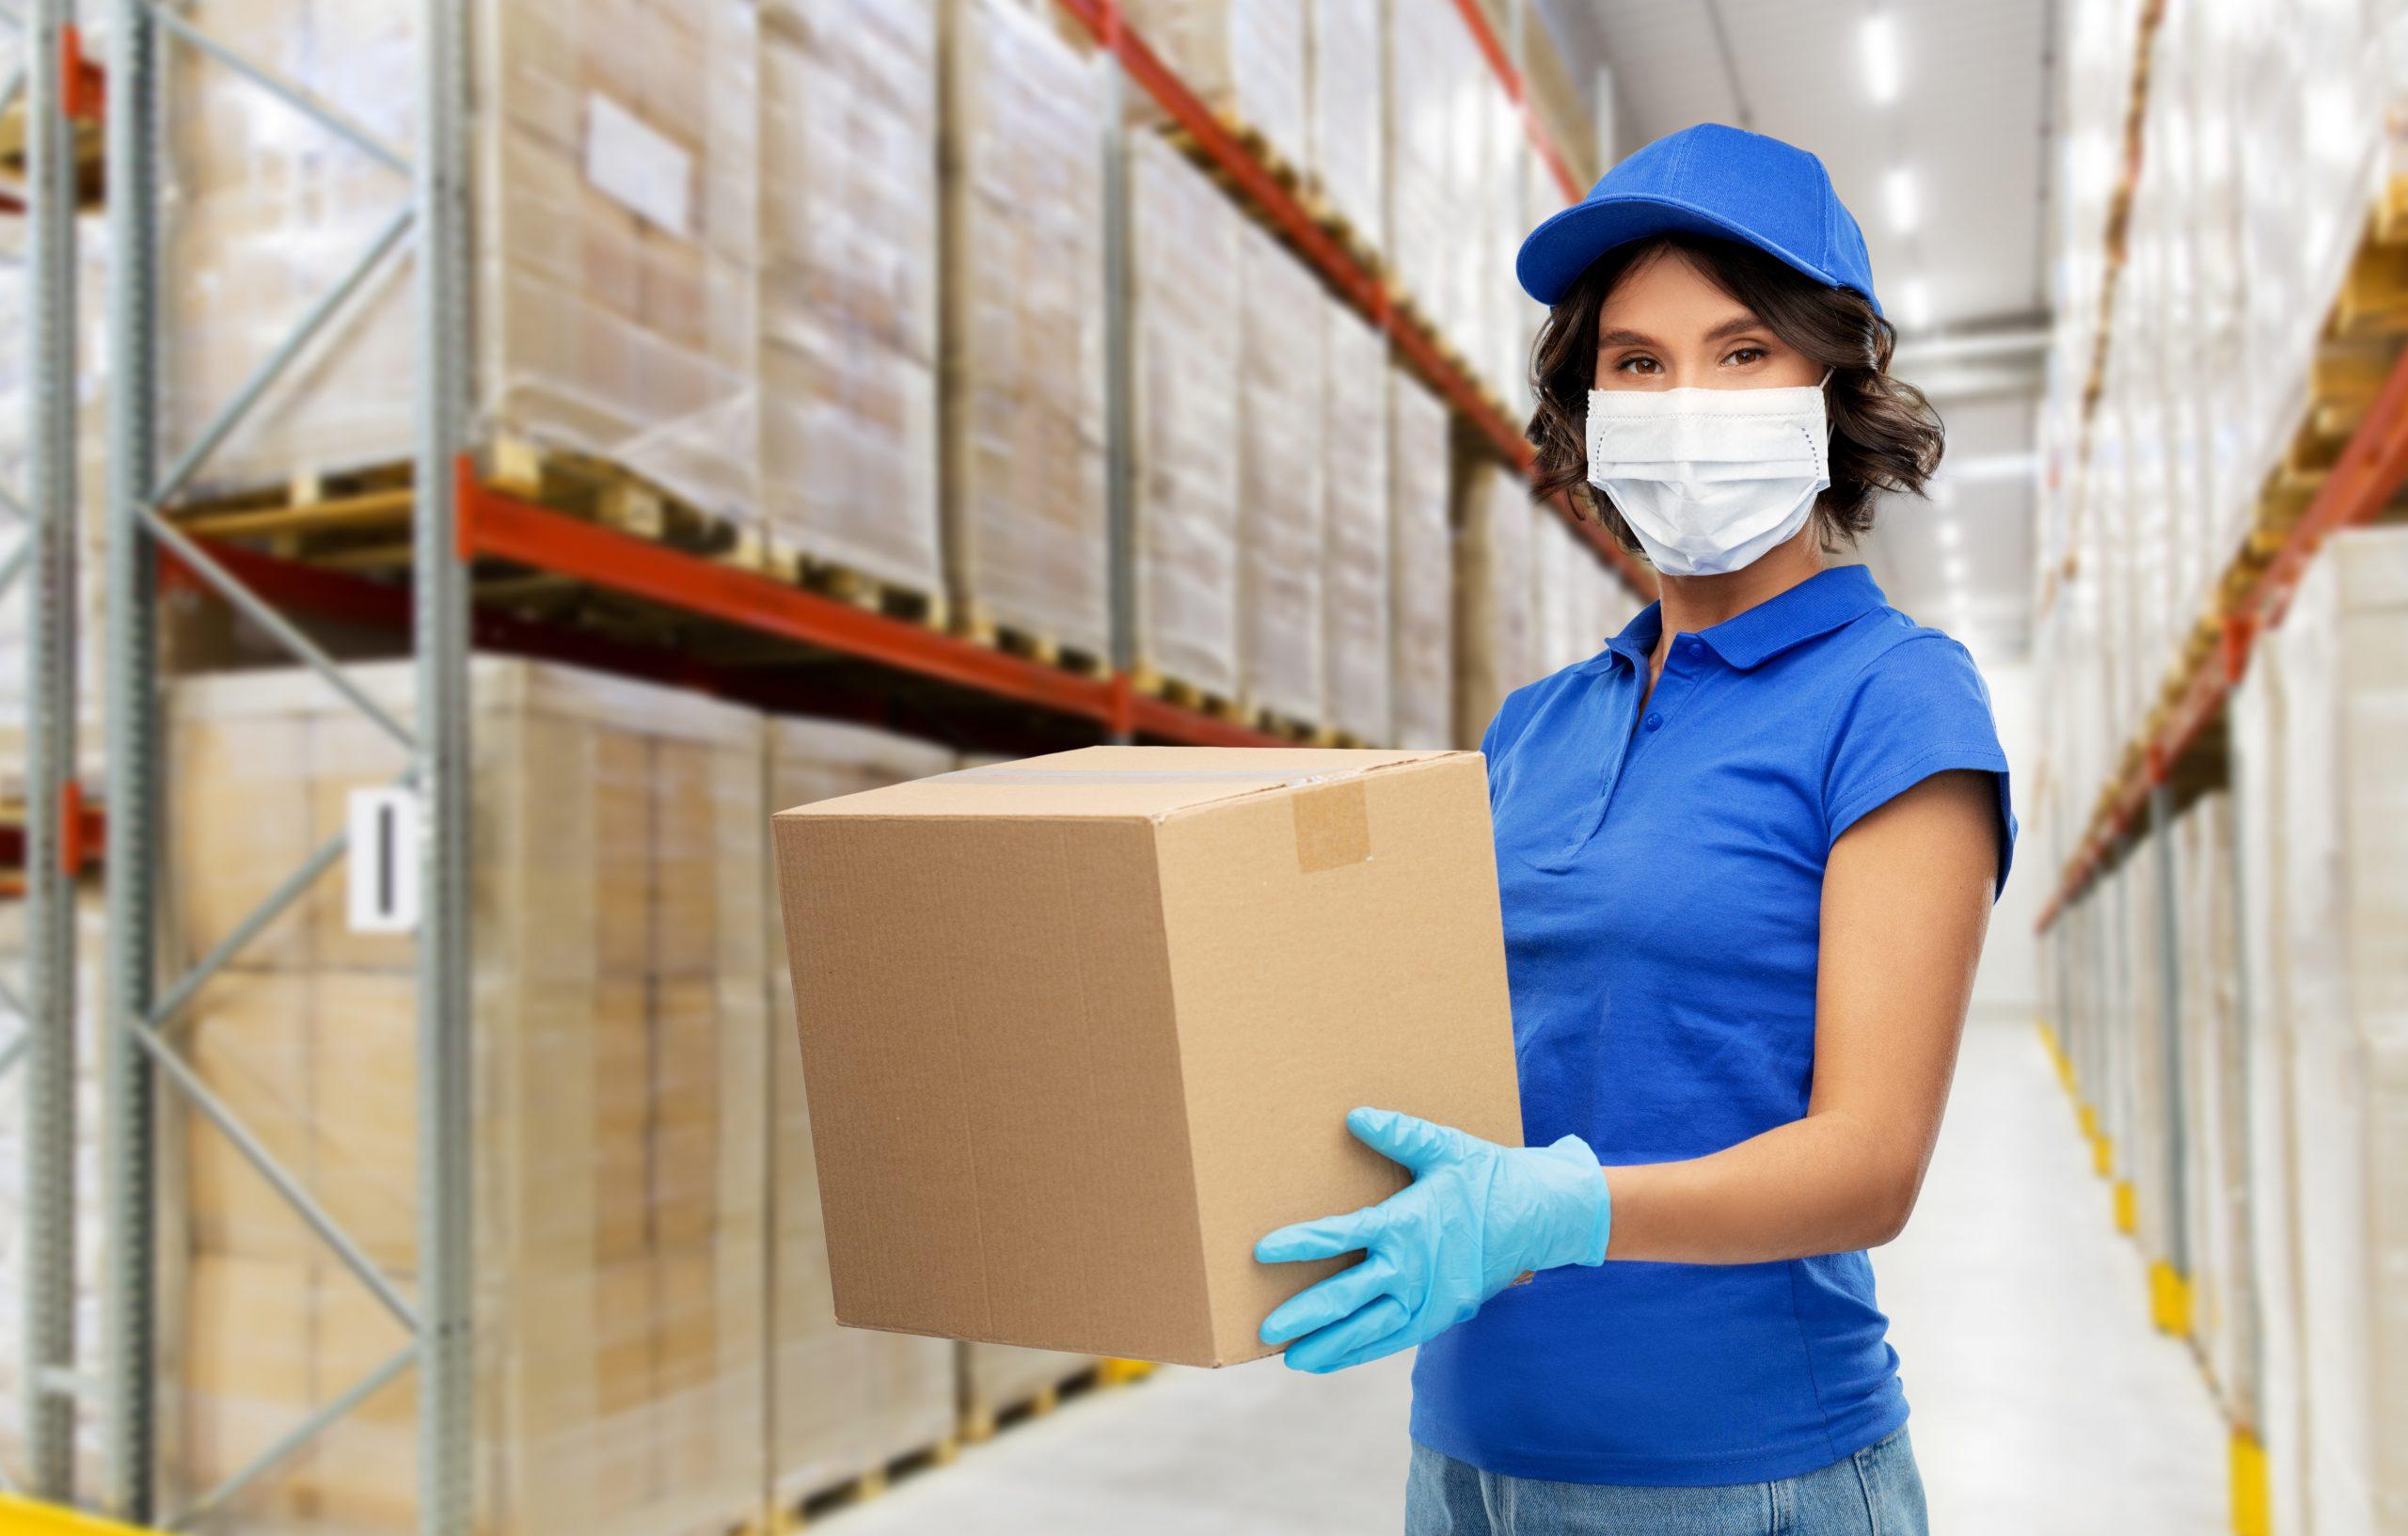 Commercial Disinfecting Services Near Me